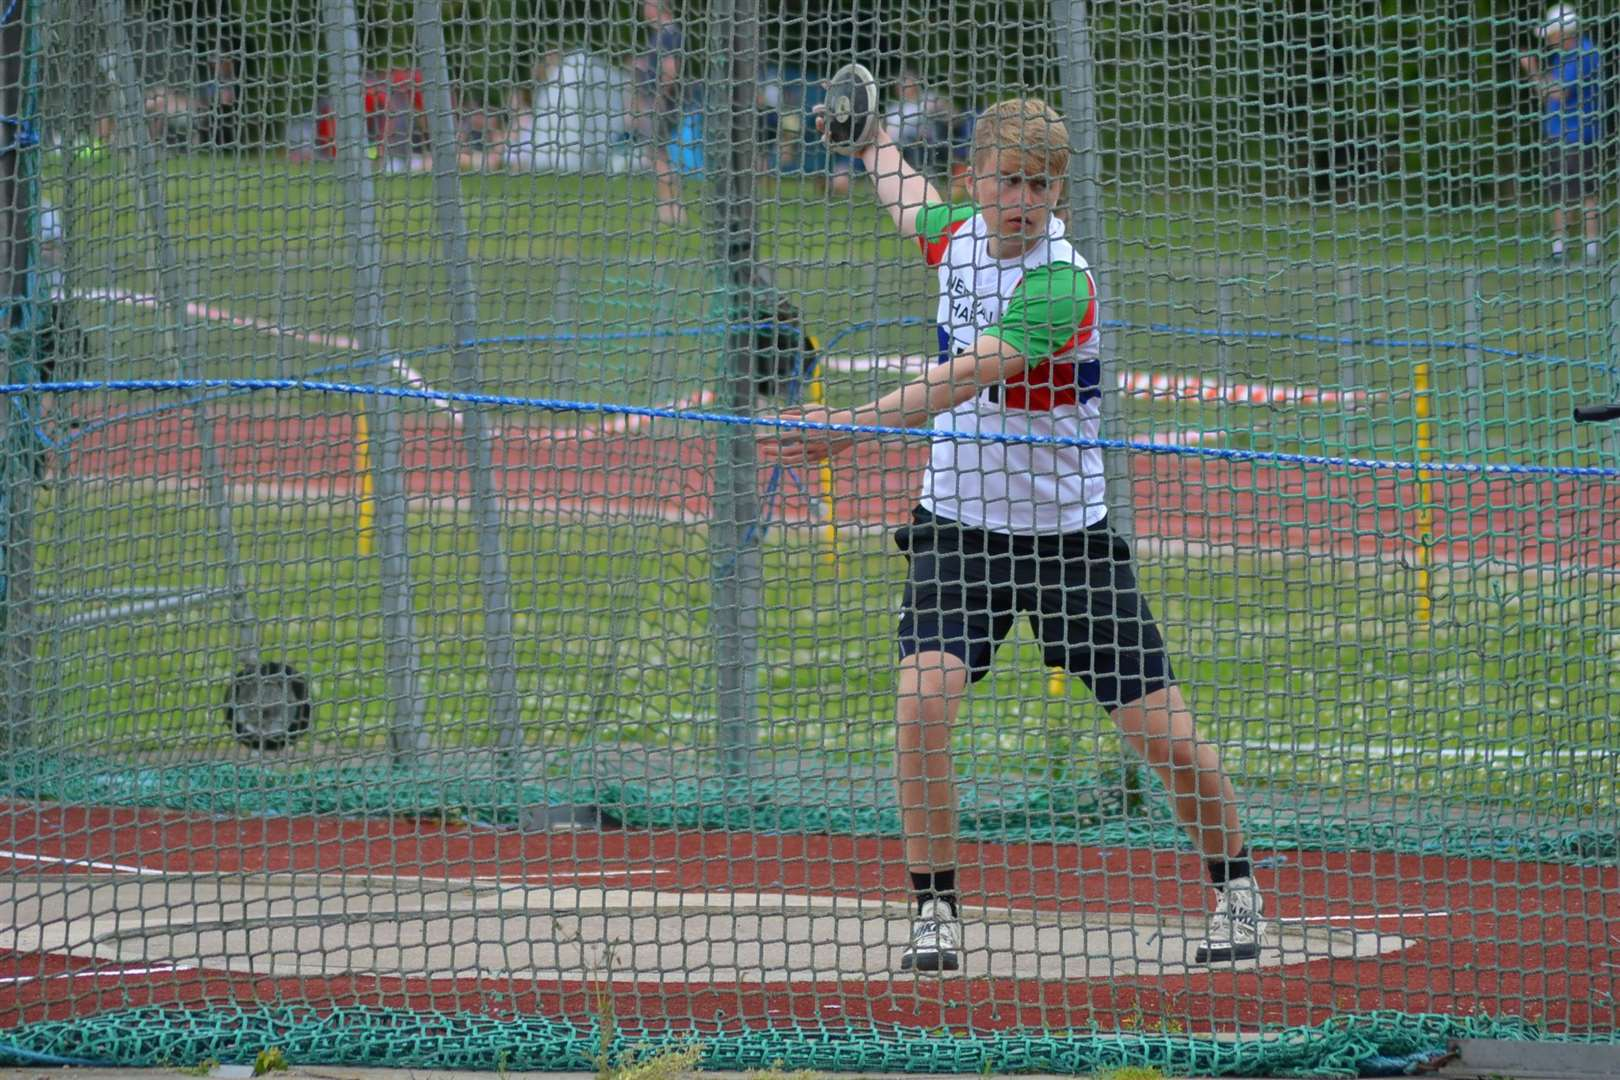 A new discus PB for Donovan Capes (11726094)